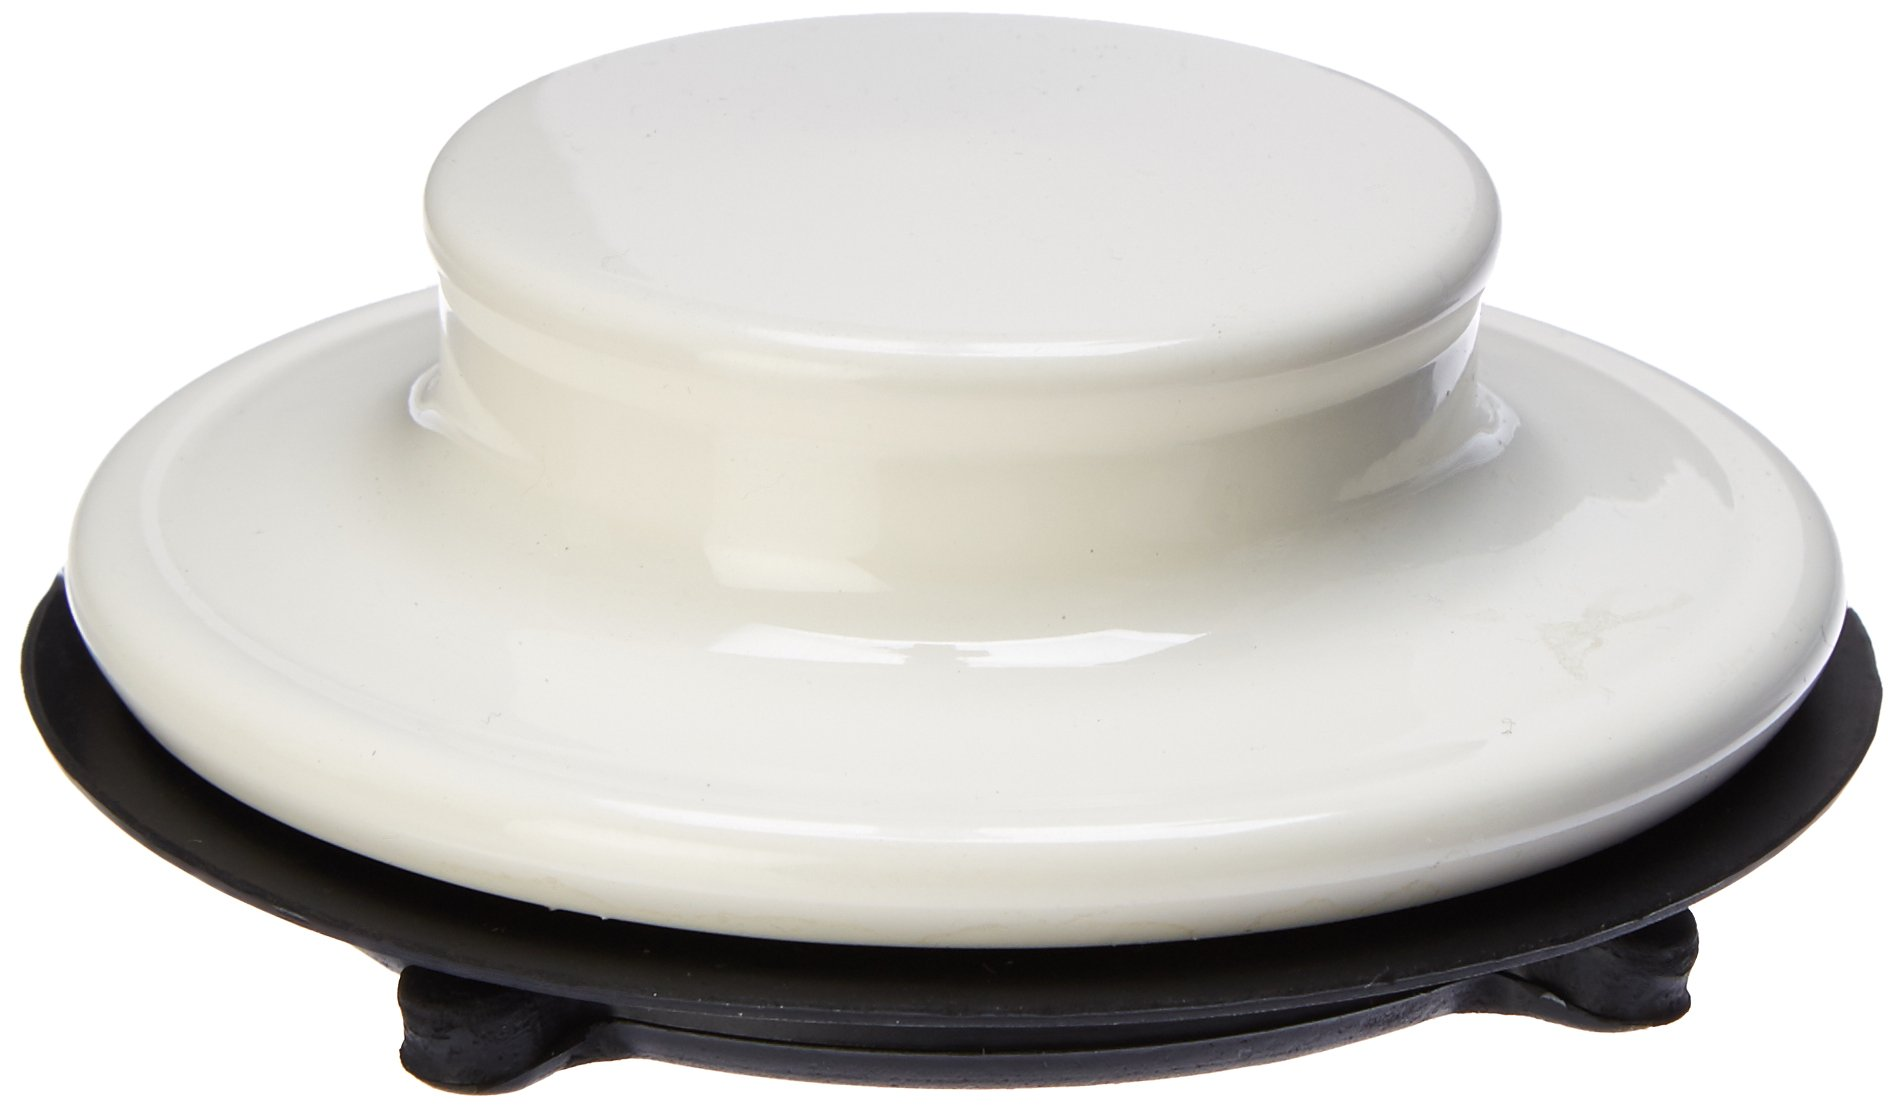 Waste King 3165 3-Bolt Mount Sink Flange Stopper, Biscuit by Waste King